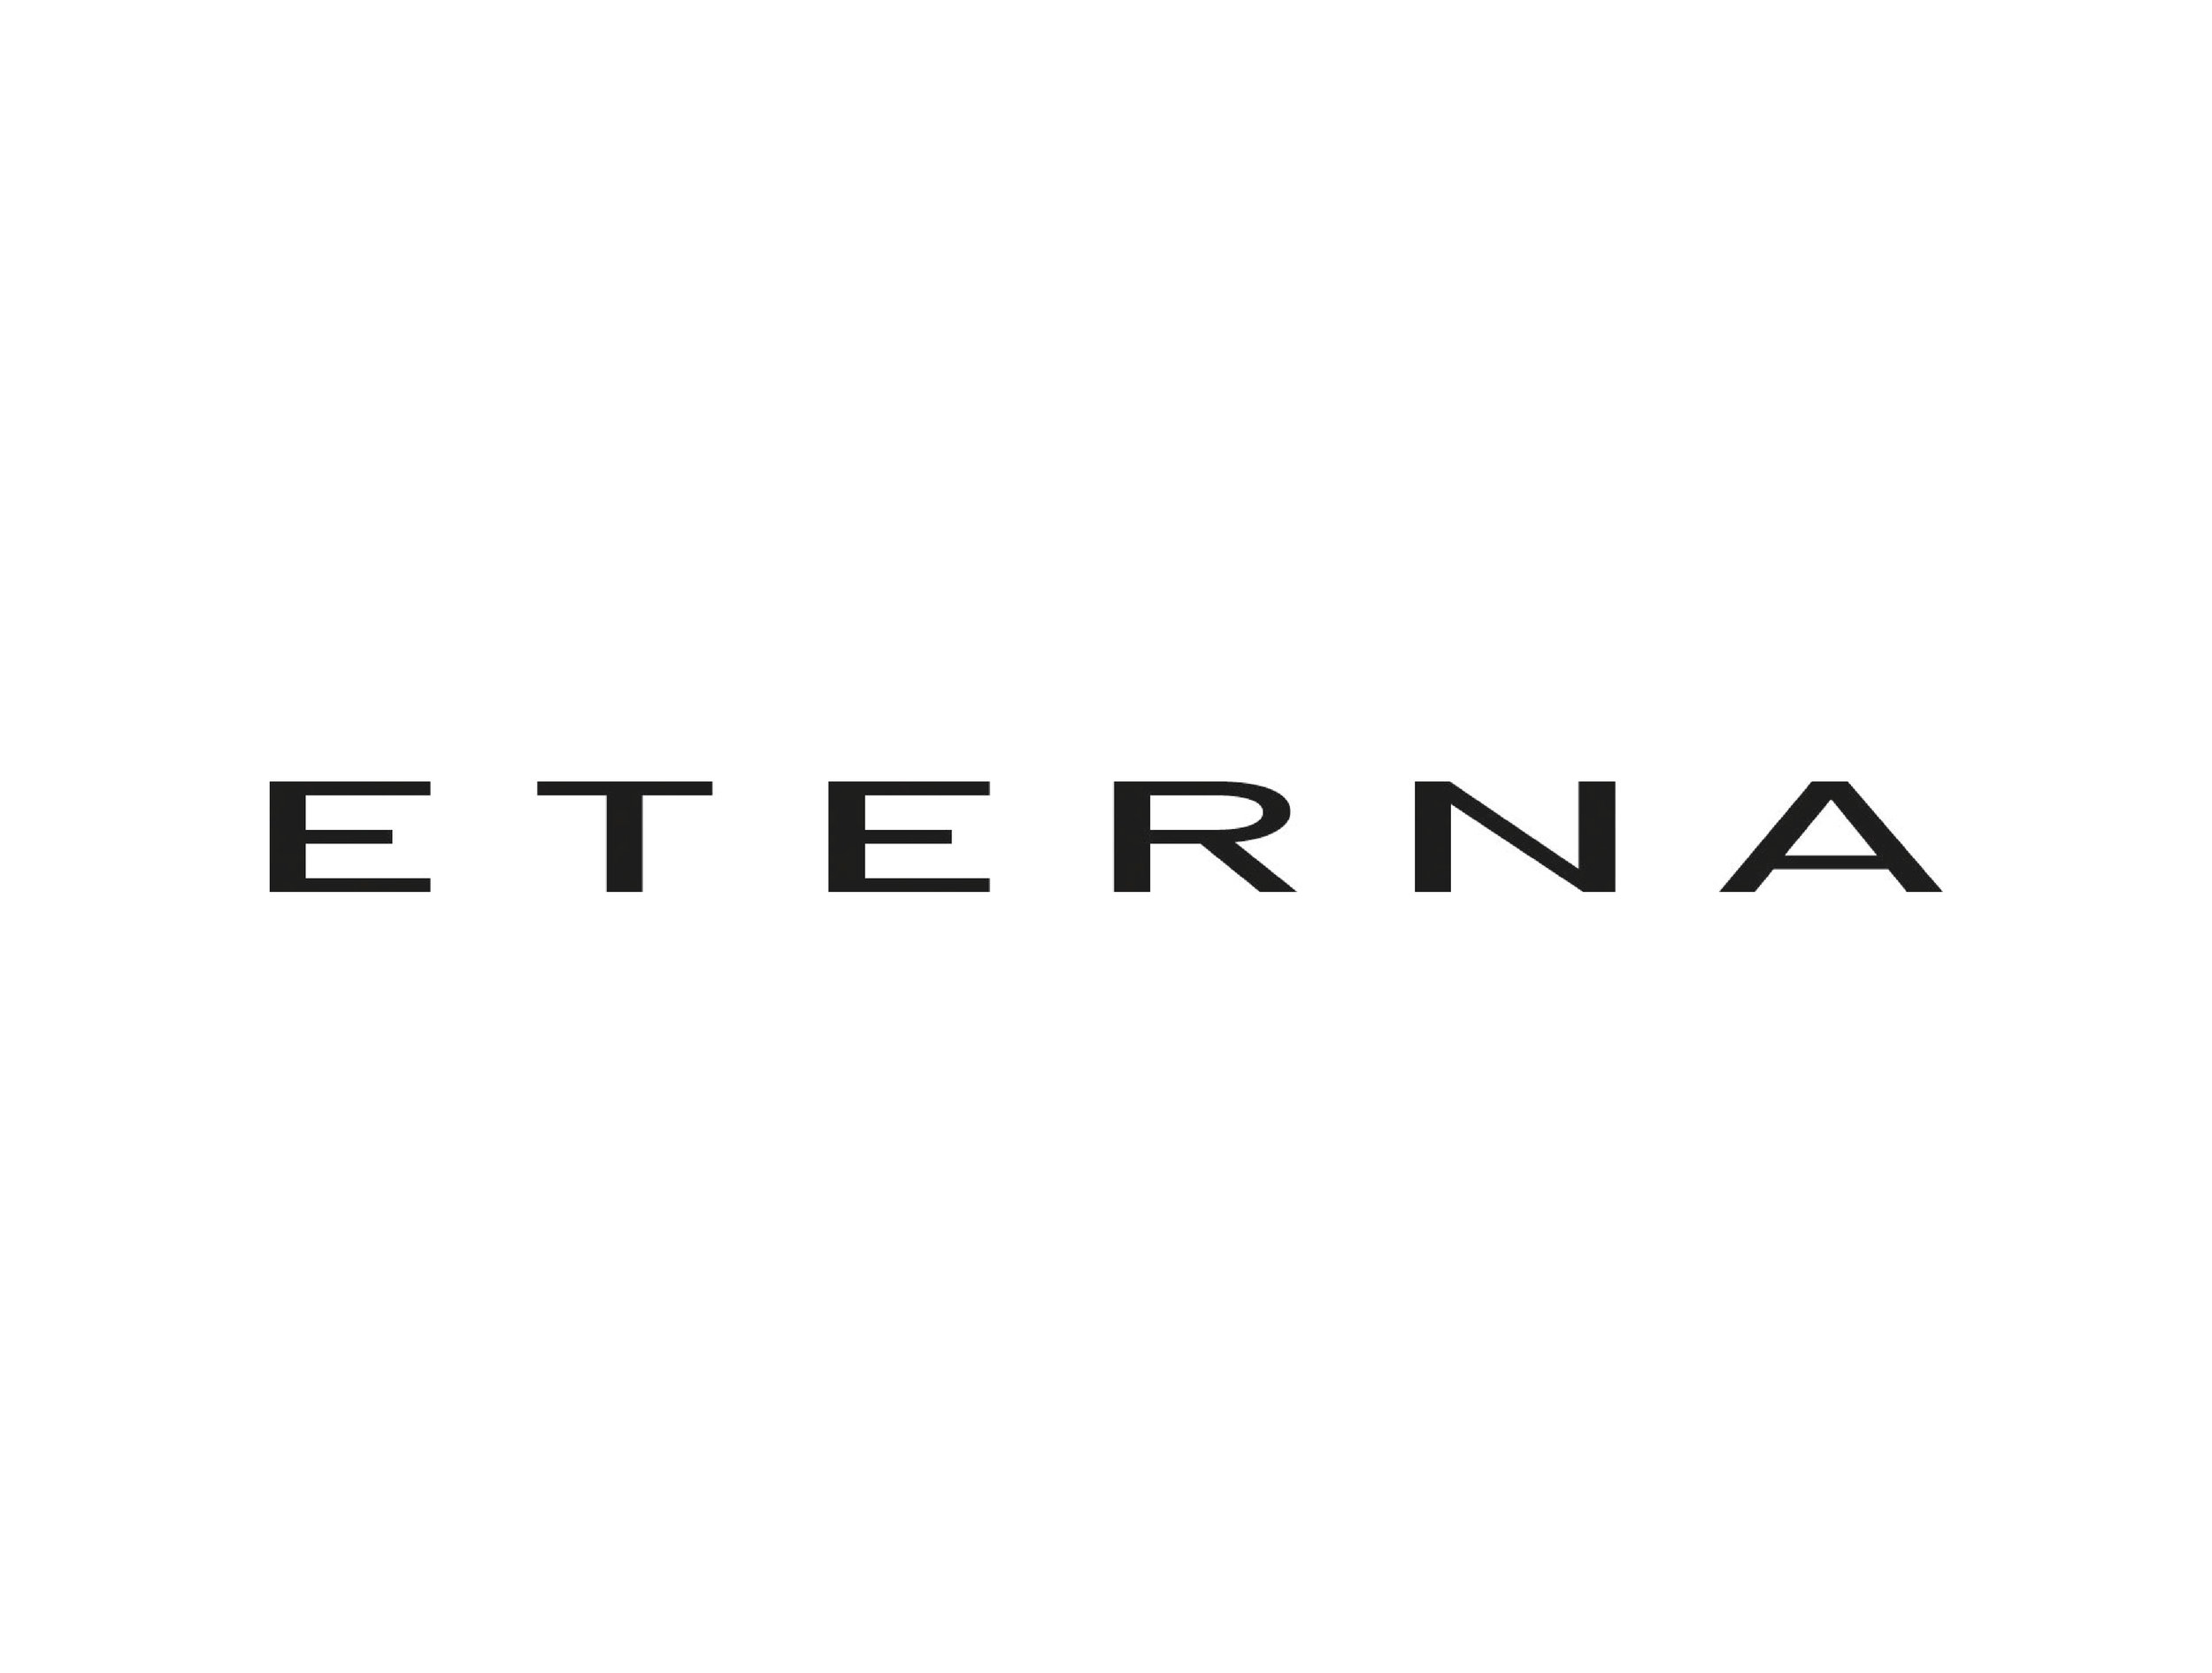 Eterna Logo Band Row2 Export_.jpg